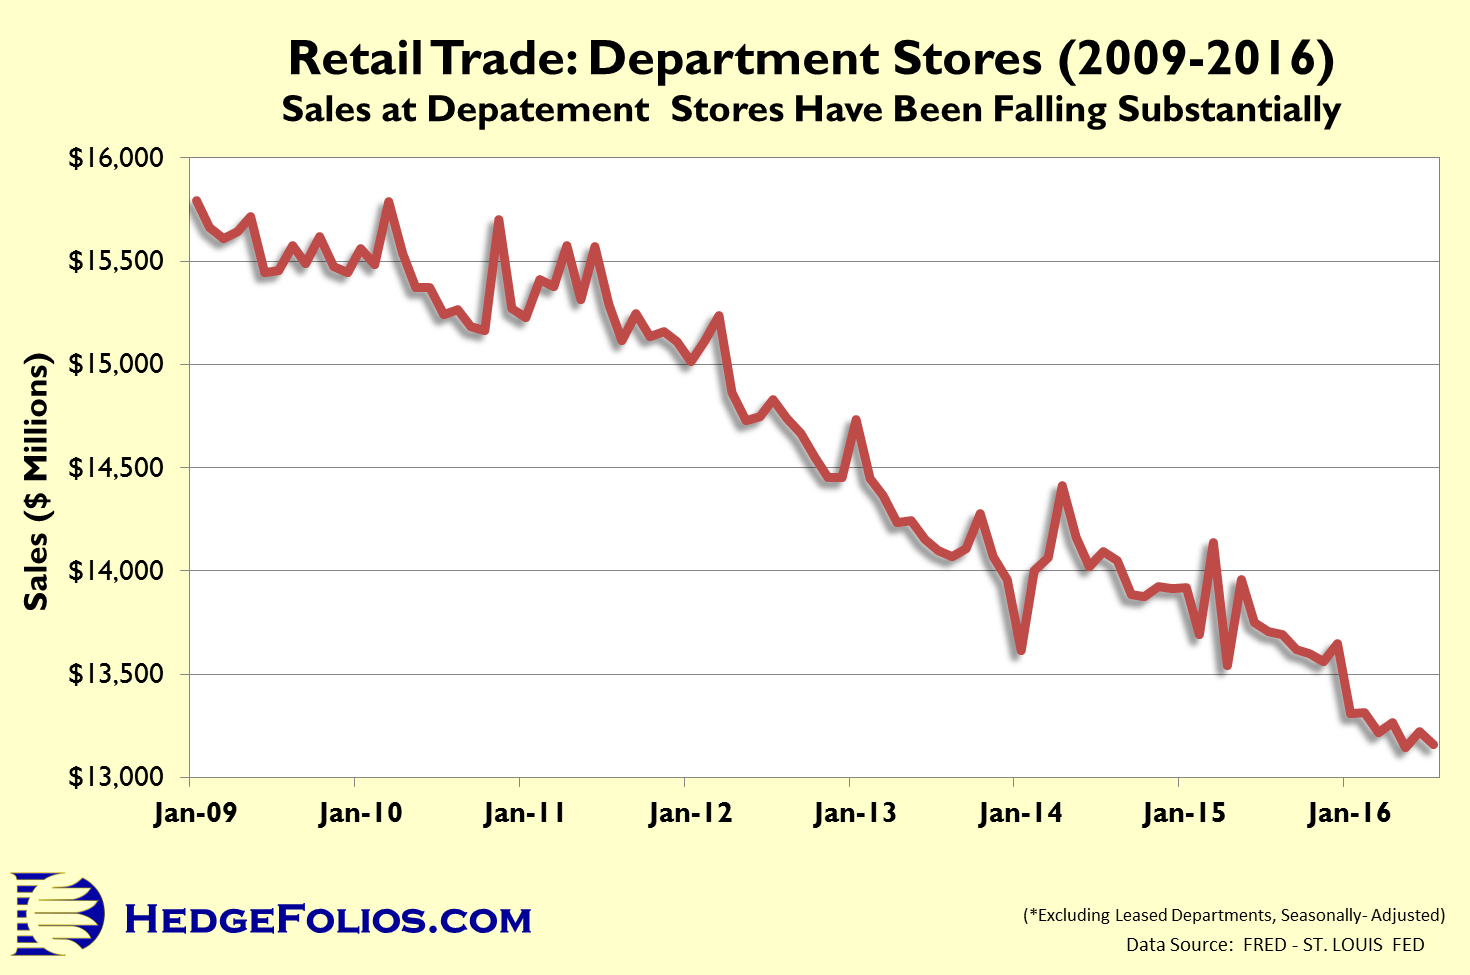 US Retail Trade Department Stores - 2009 to 2016 - HedgeFolios